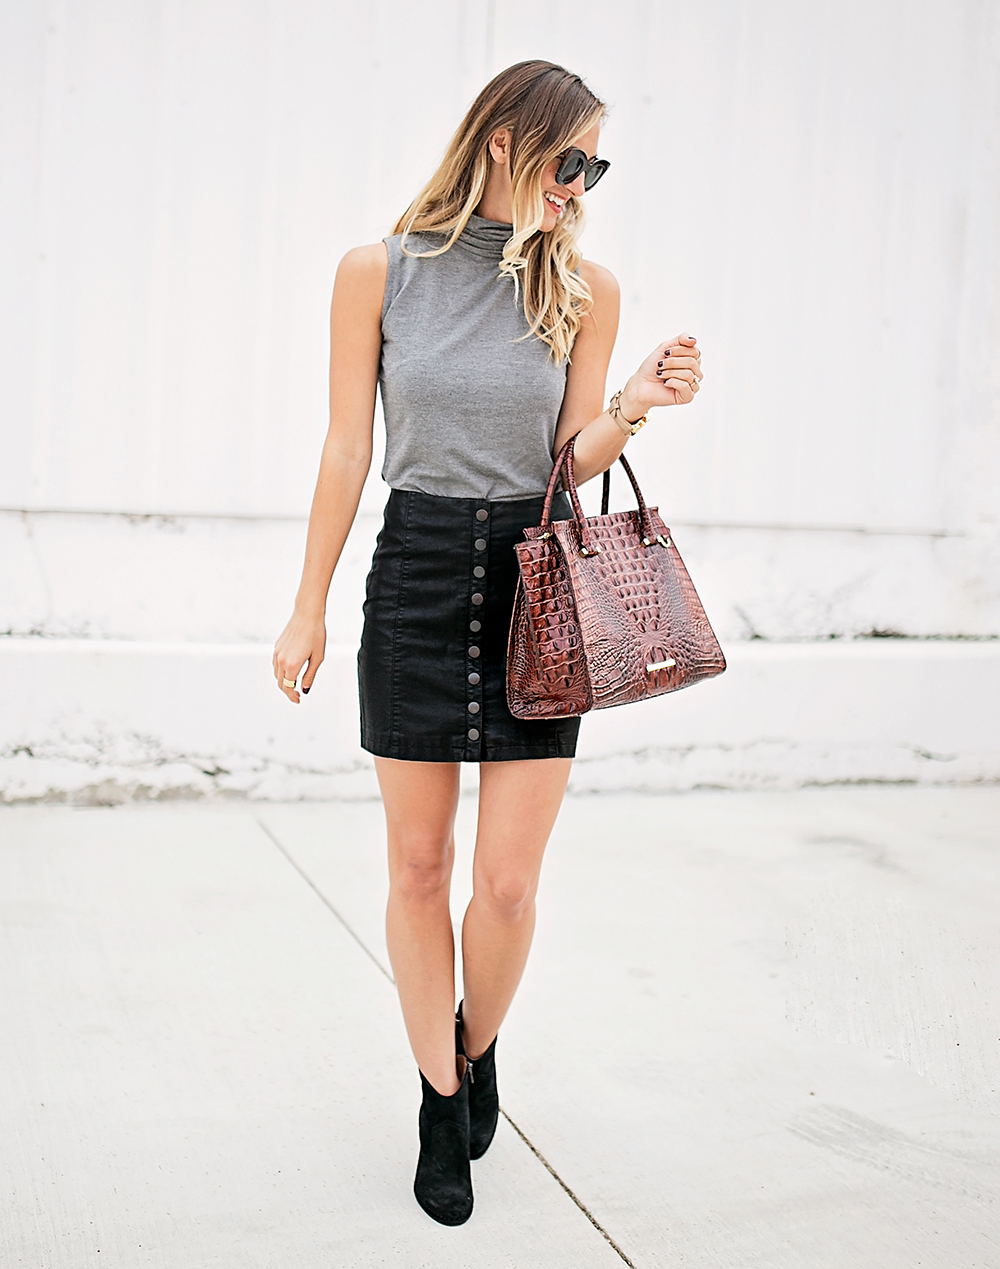 livvyland-blog-olivia-watson-bailey-44-grey-turtleneck-tank-top-free-people-leather-button-up-a-line-mini-skirt-celine-marta-sunglasses-9